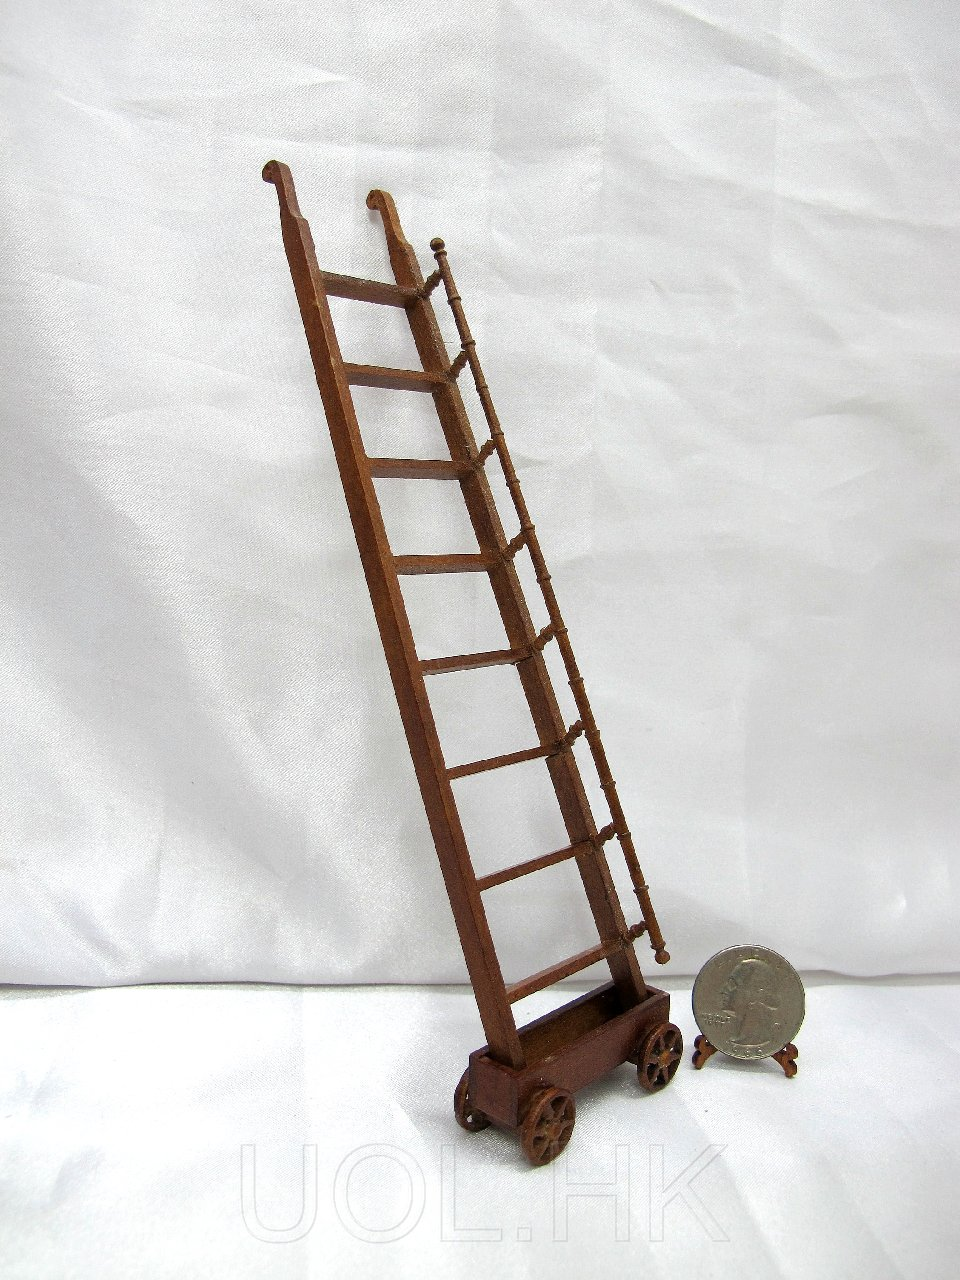 1:12 Scale Doll House Miniature Ladder And Trolley -Walnut